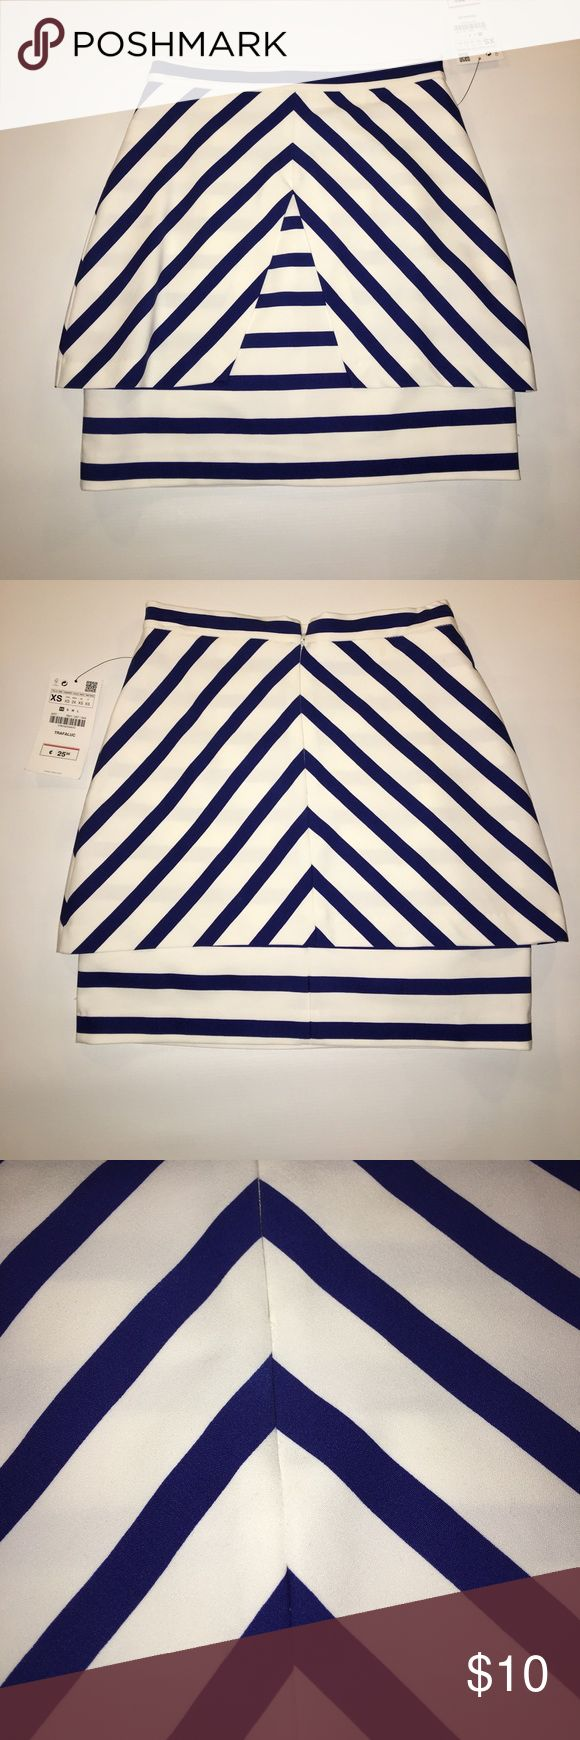 """Zara skirt Sexy and unique Zara skirt. Purchased from Zara Barcelona Spain. Never worn. This stretch skirt has a unique design and perfect for casual or party wear. Size is XS but this runs very small. I would consider this more of an XXS. 26"""" from waist to hem. Waist is 25"""" but the overall skirt is snug so be aware of you are a true XS it will be   snug. However if you're looking for a tight fit this will work perfectly.  48% cotton, 48% polyester, 4% elastane Zara Skirts Mini"""